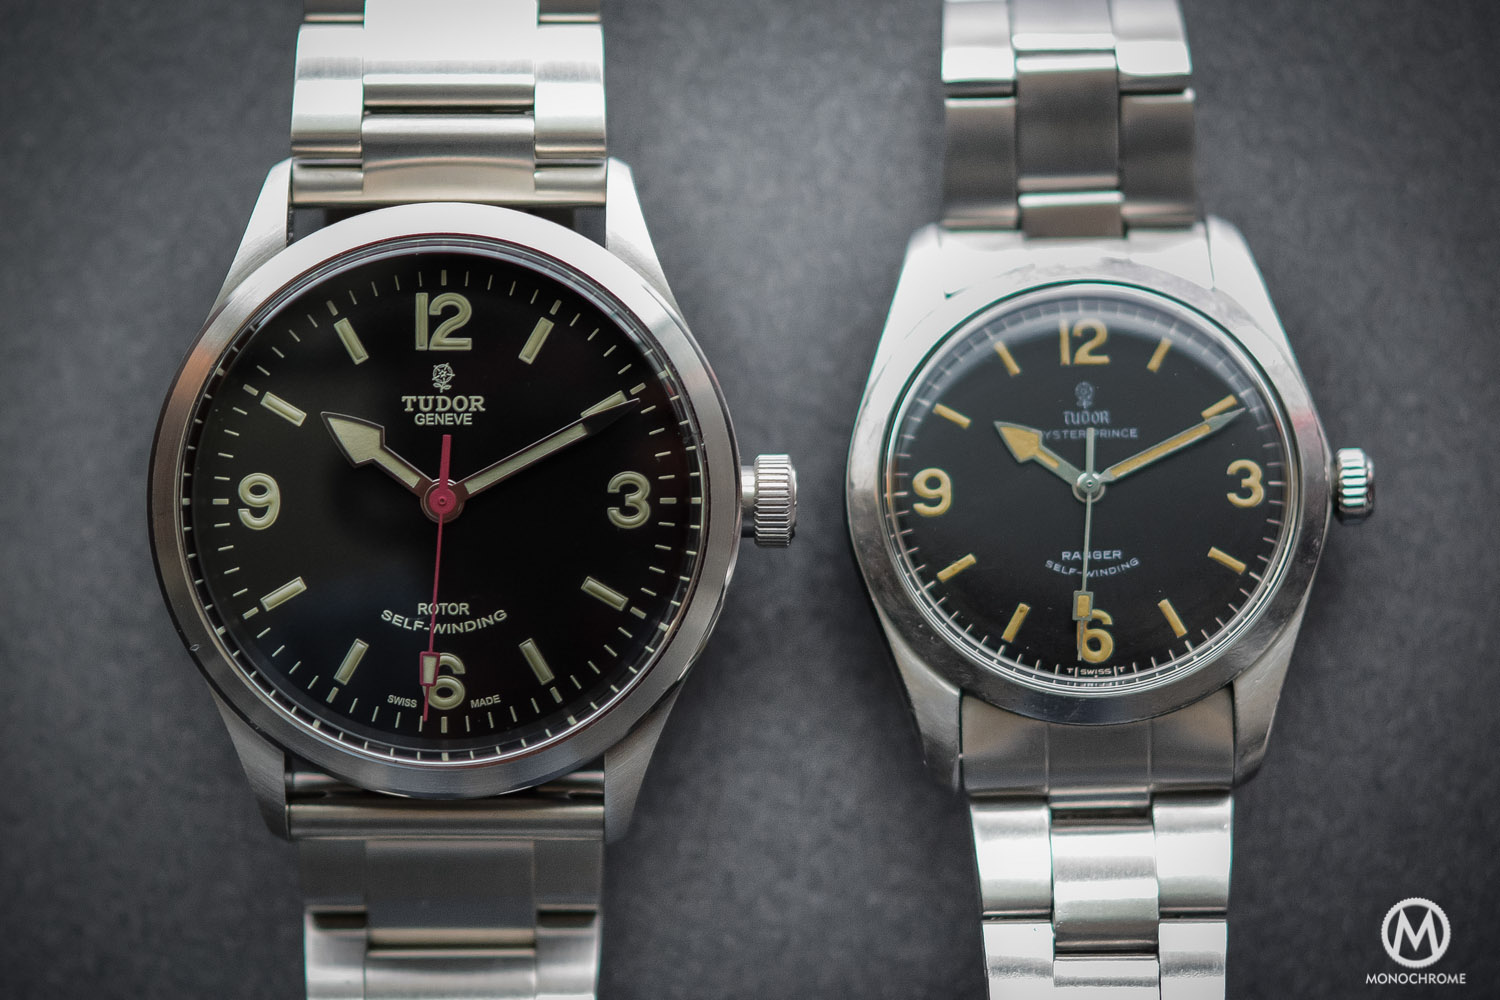 45b30dcce72 Tudor and its Heritage - The old and new Tudor Ranger face to face ...